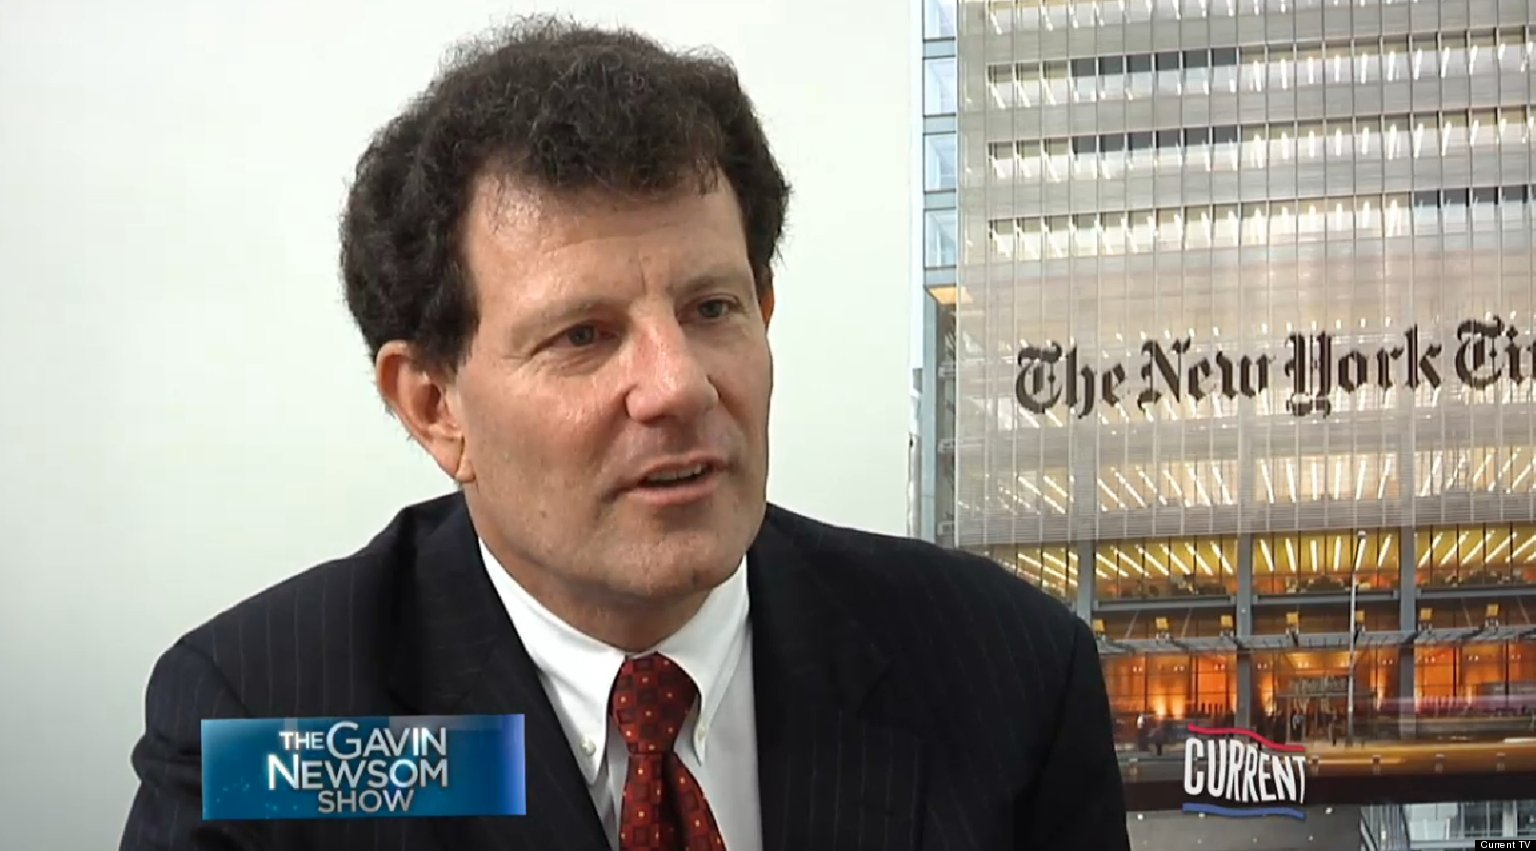 Nicholas Kristof On Obama: 'I Don't Think He Ever Came Up With A Good Bumper Sticker' (VIDEO)